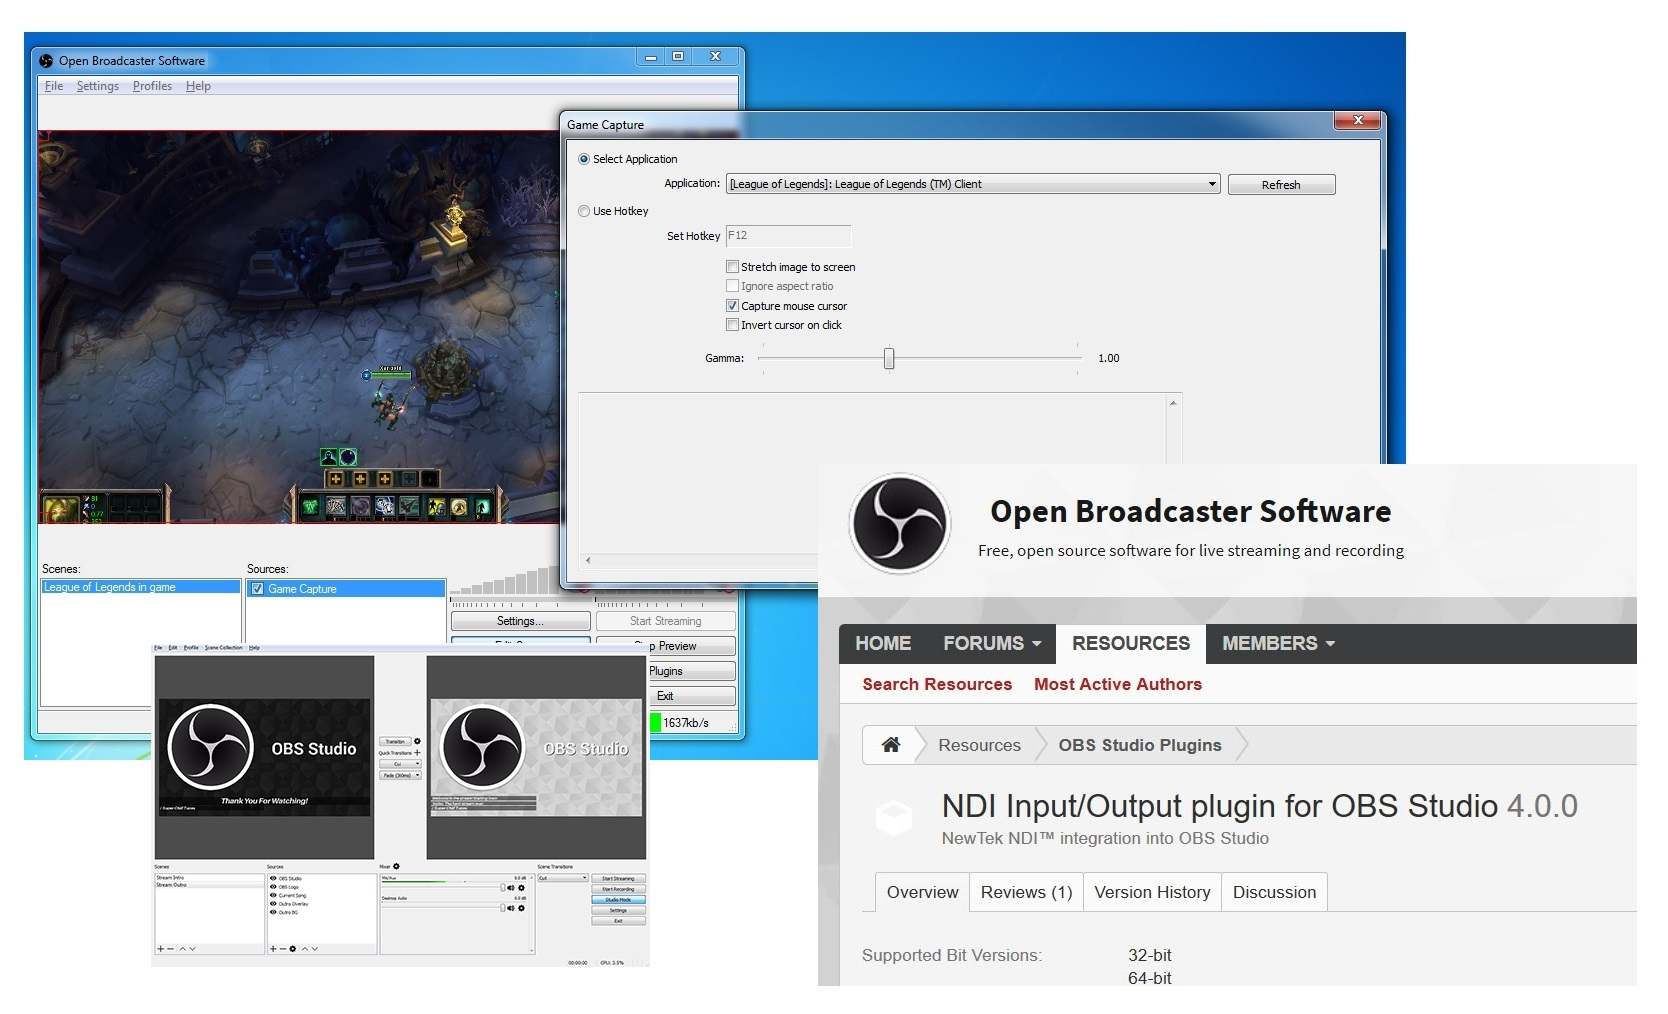 Open Broadcaster Software Adds a Few Million New Users for NDI®